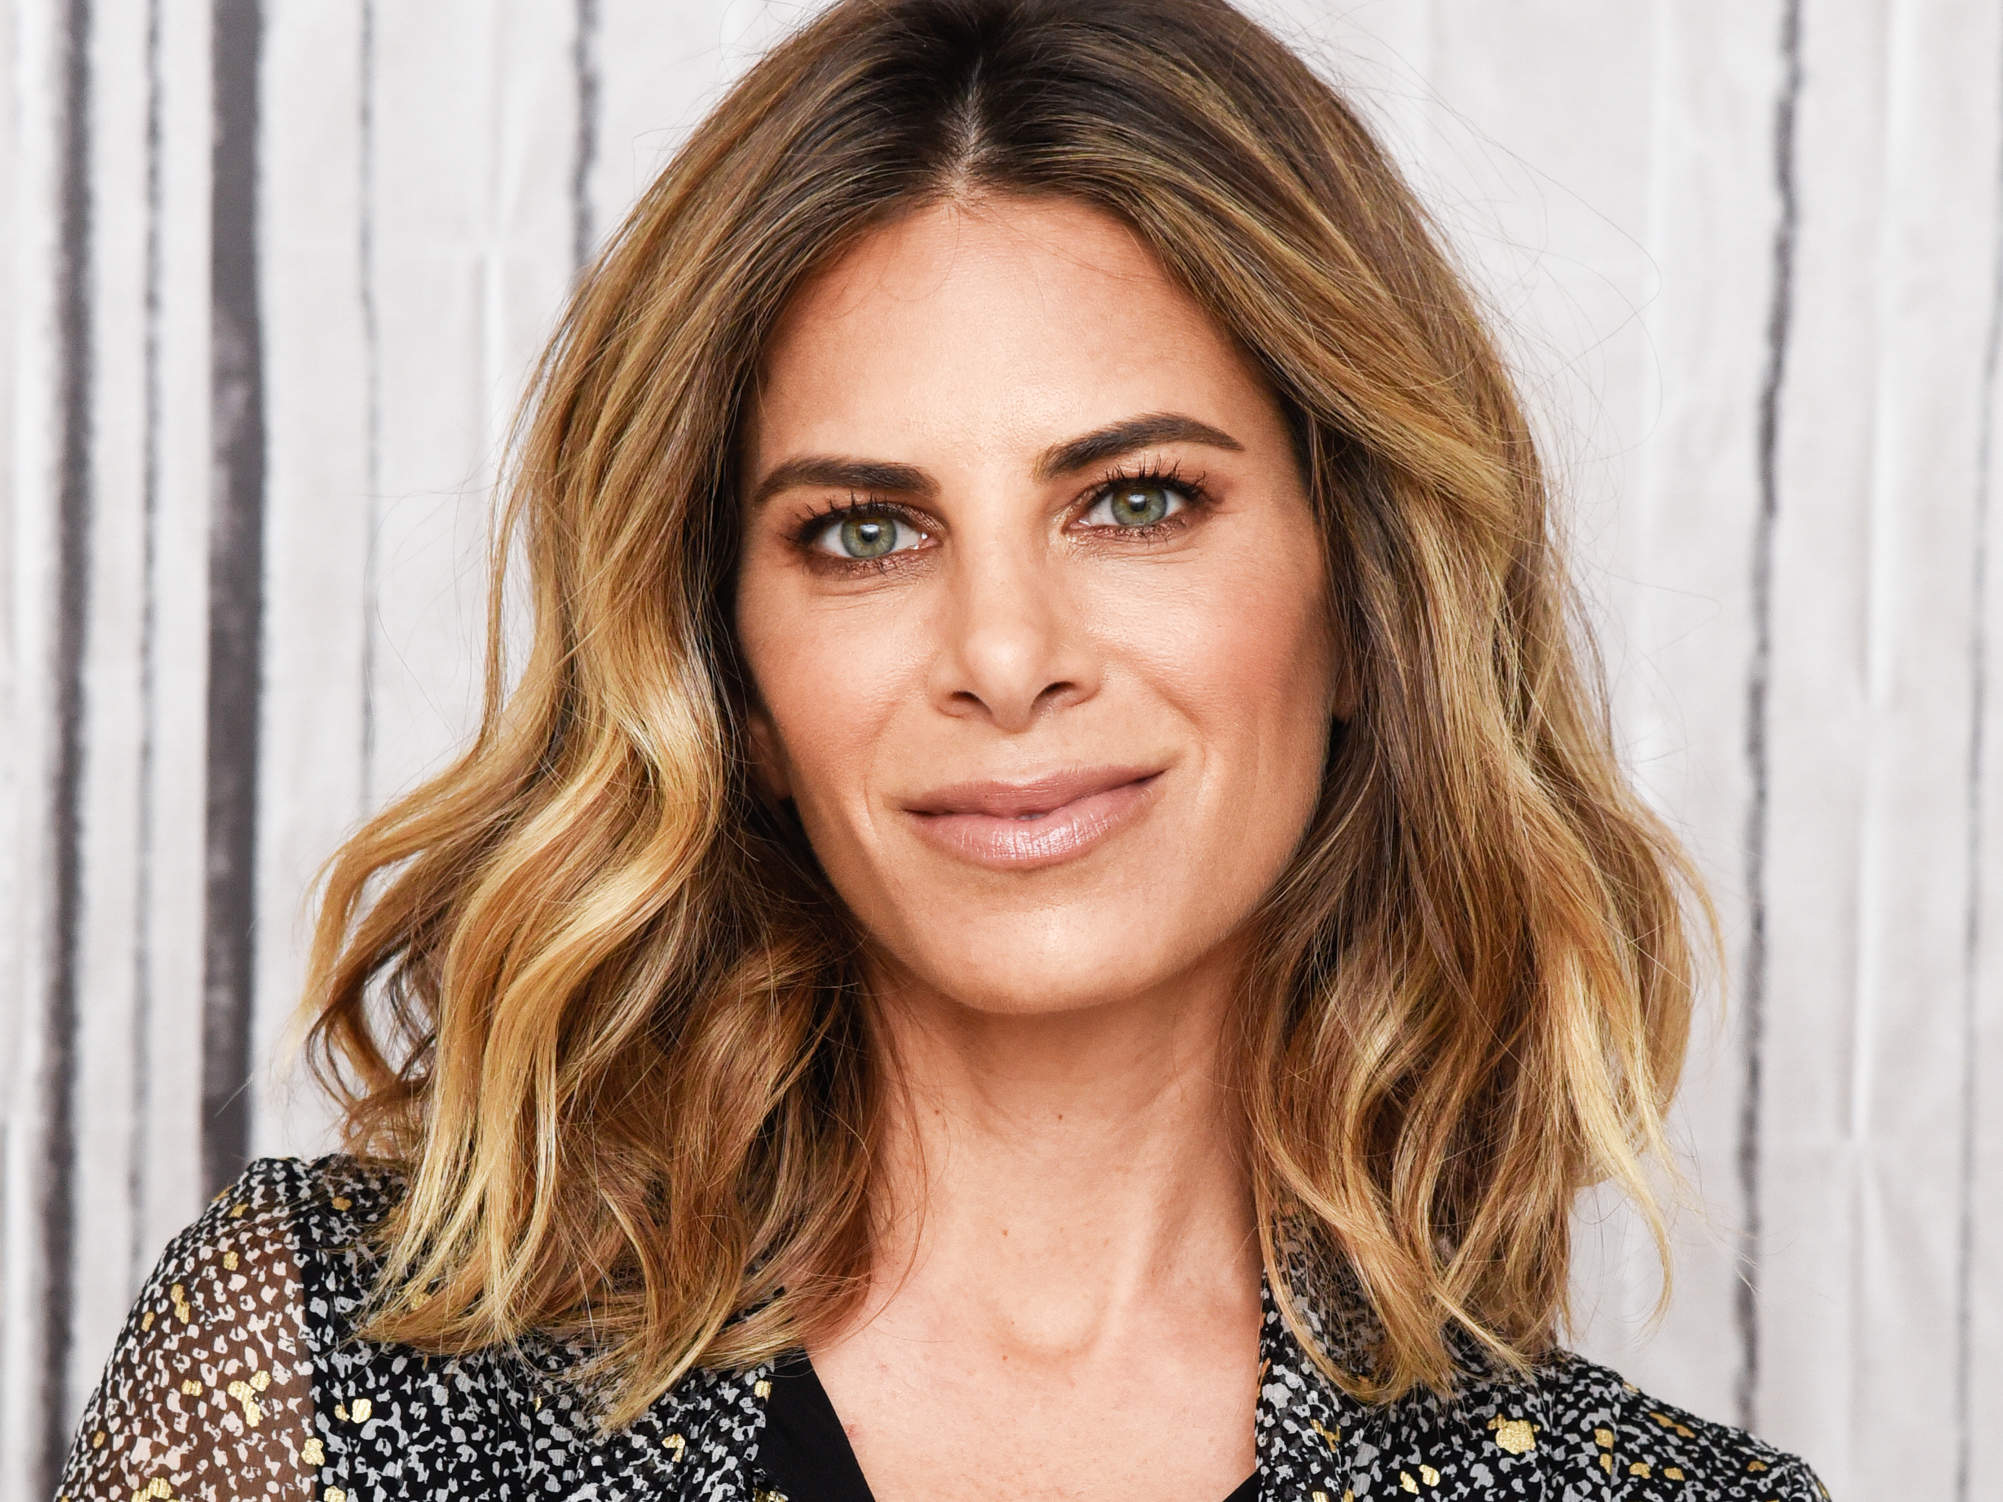 Work Your Entire Body With Jillian Michaels' 12-Minute Cardio Workout